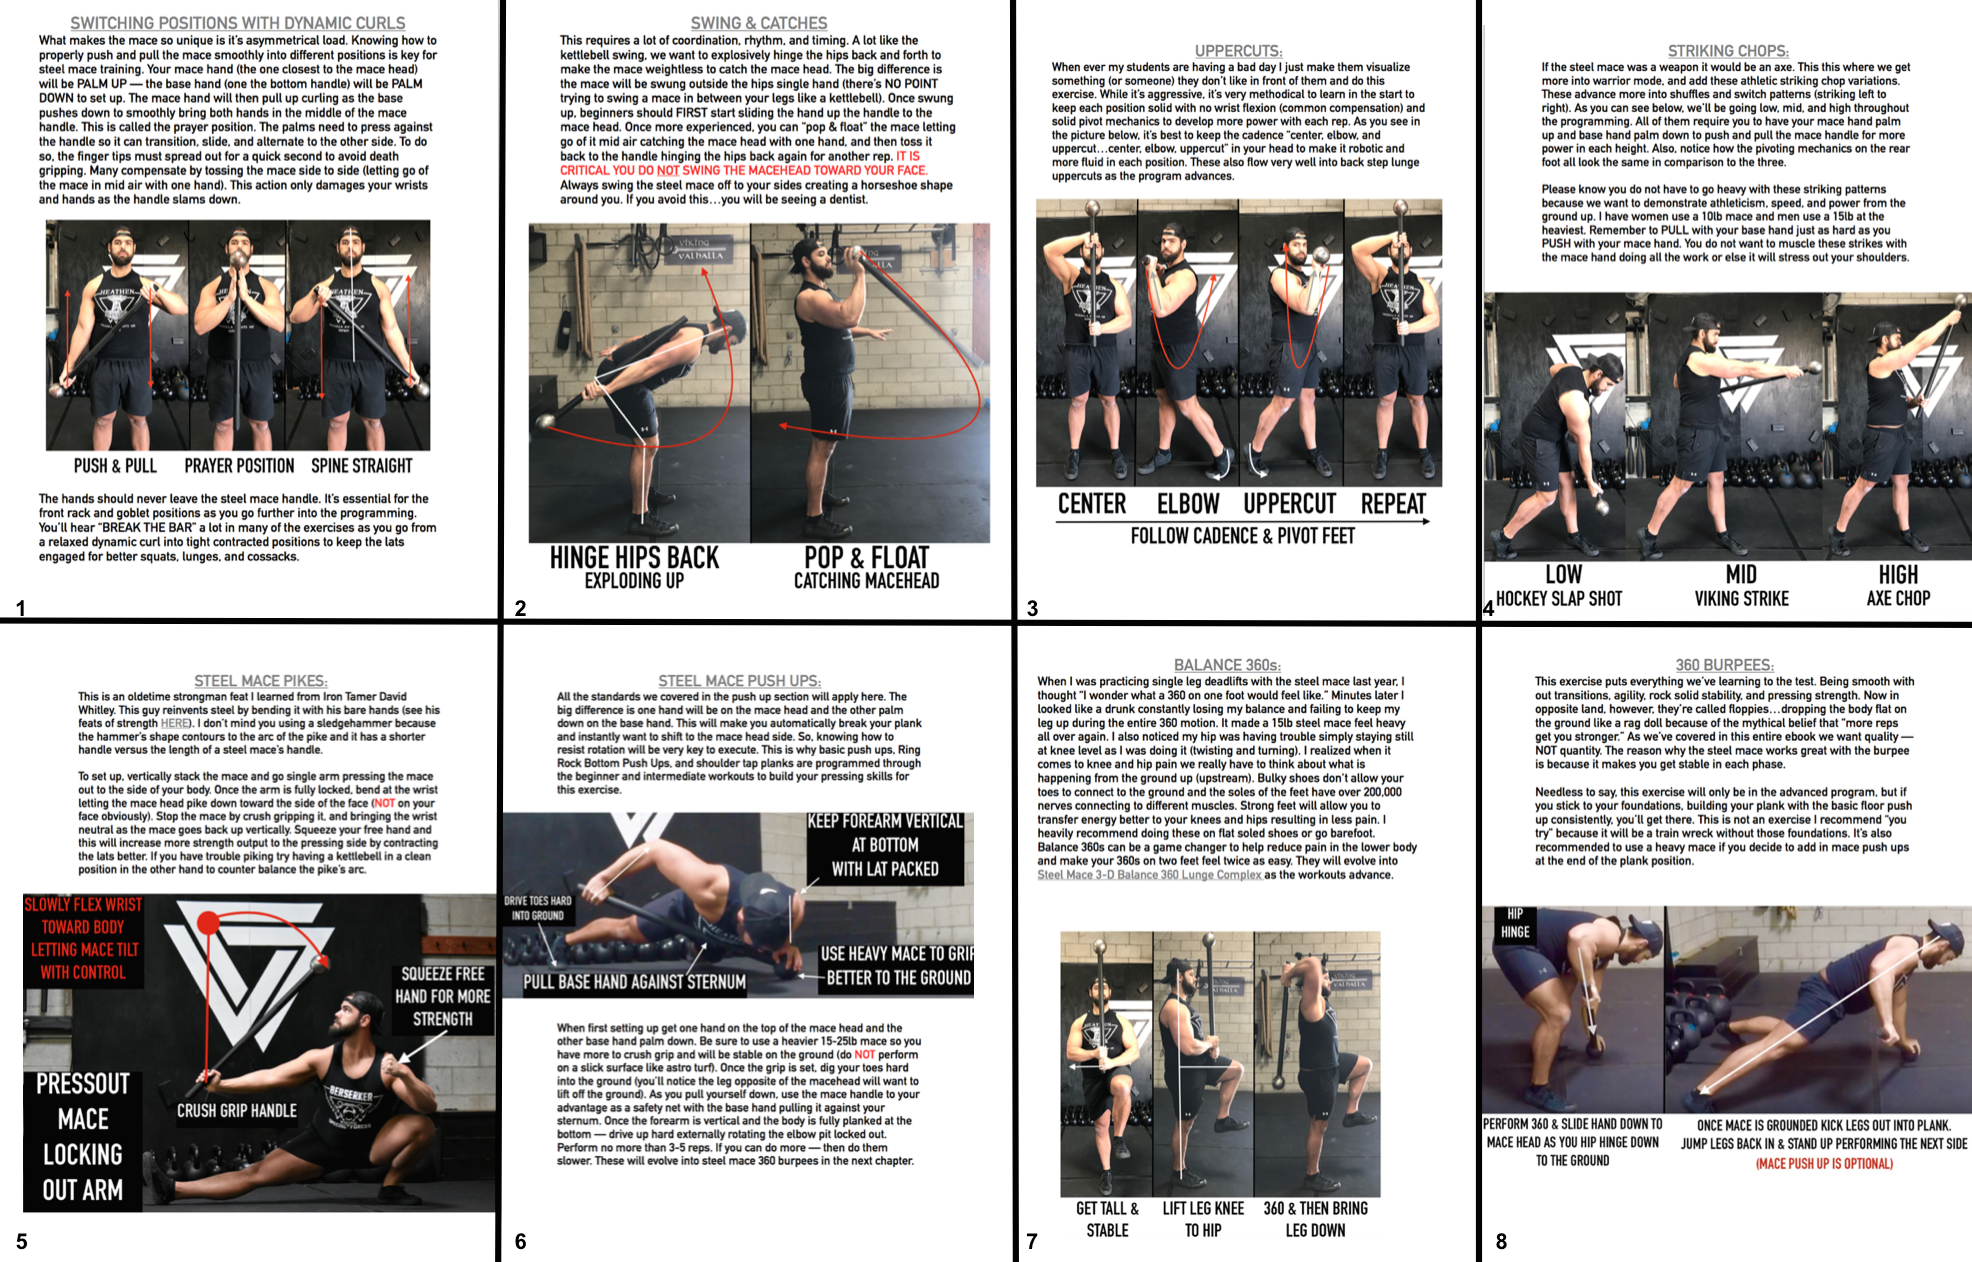 Steel Mace Education 101 for Bodyweight Strength